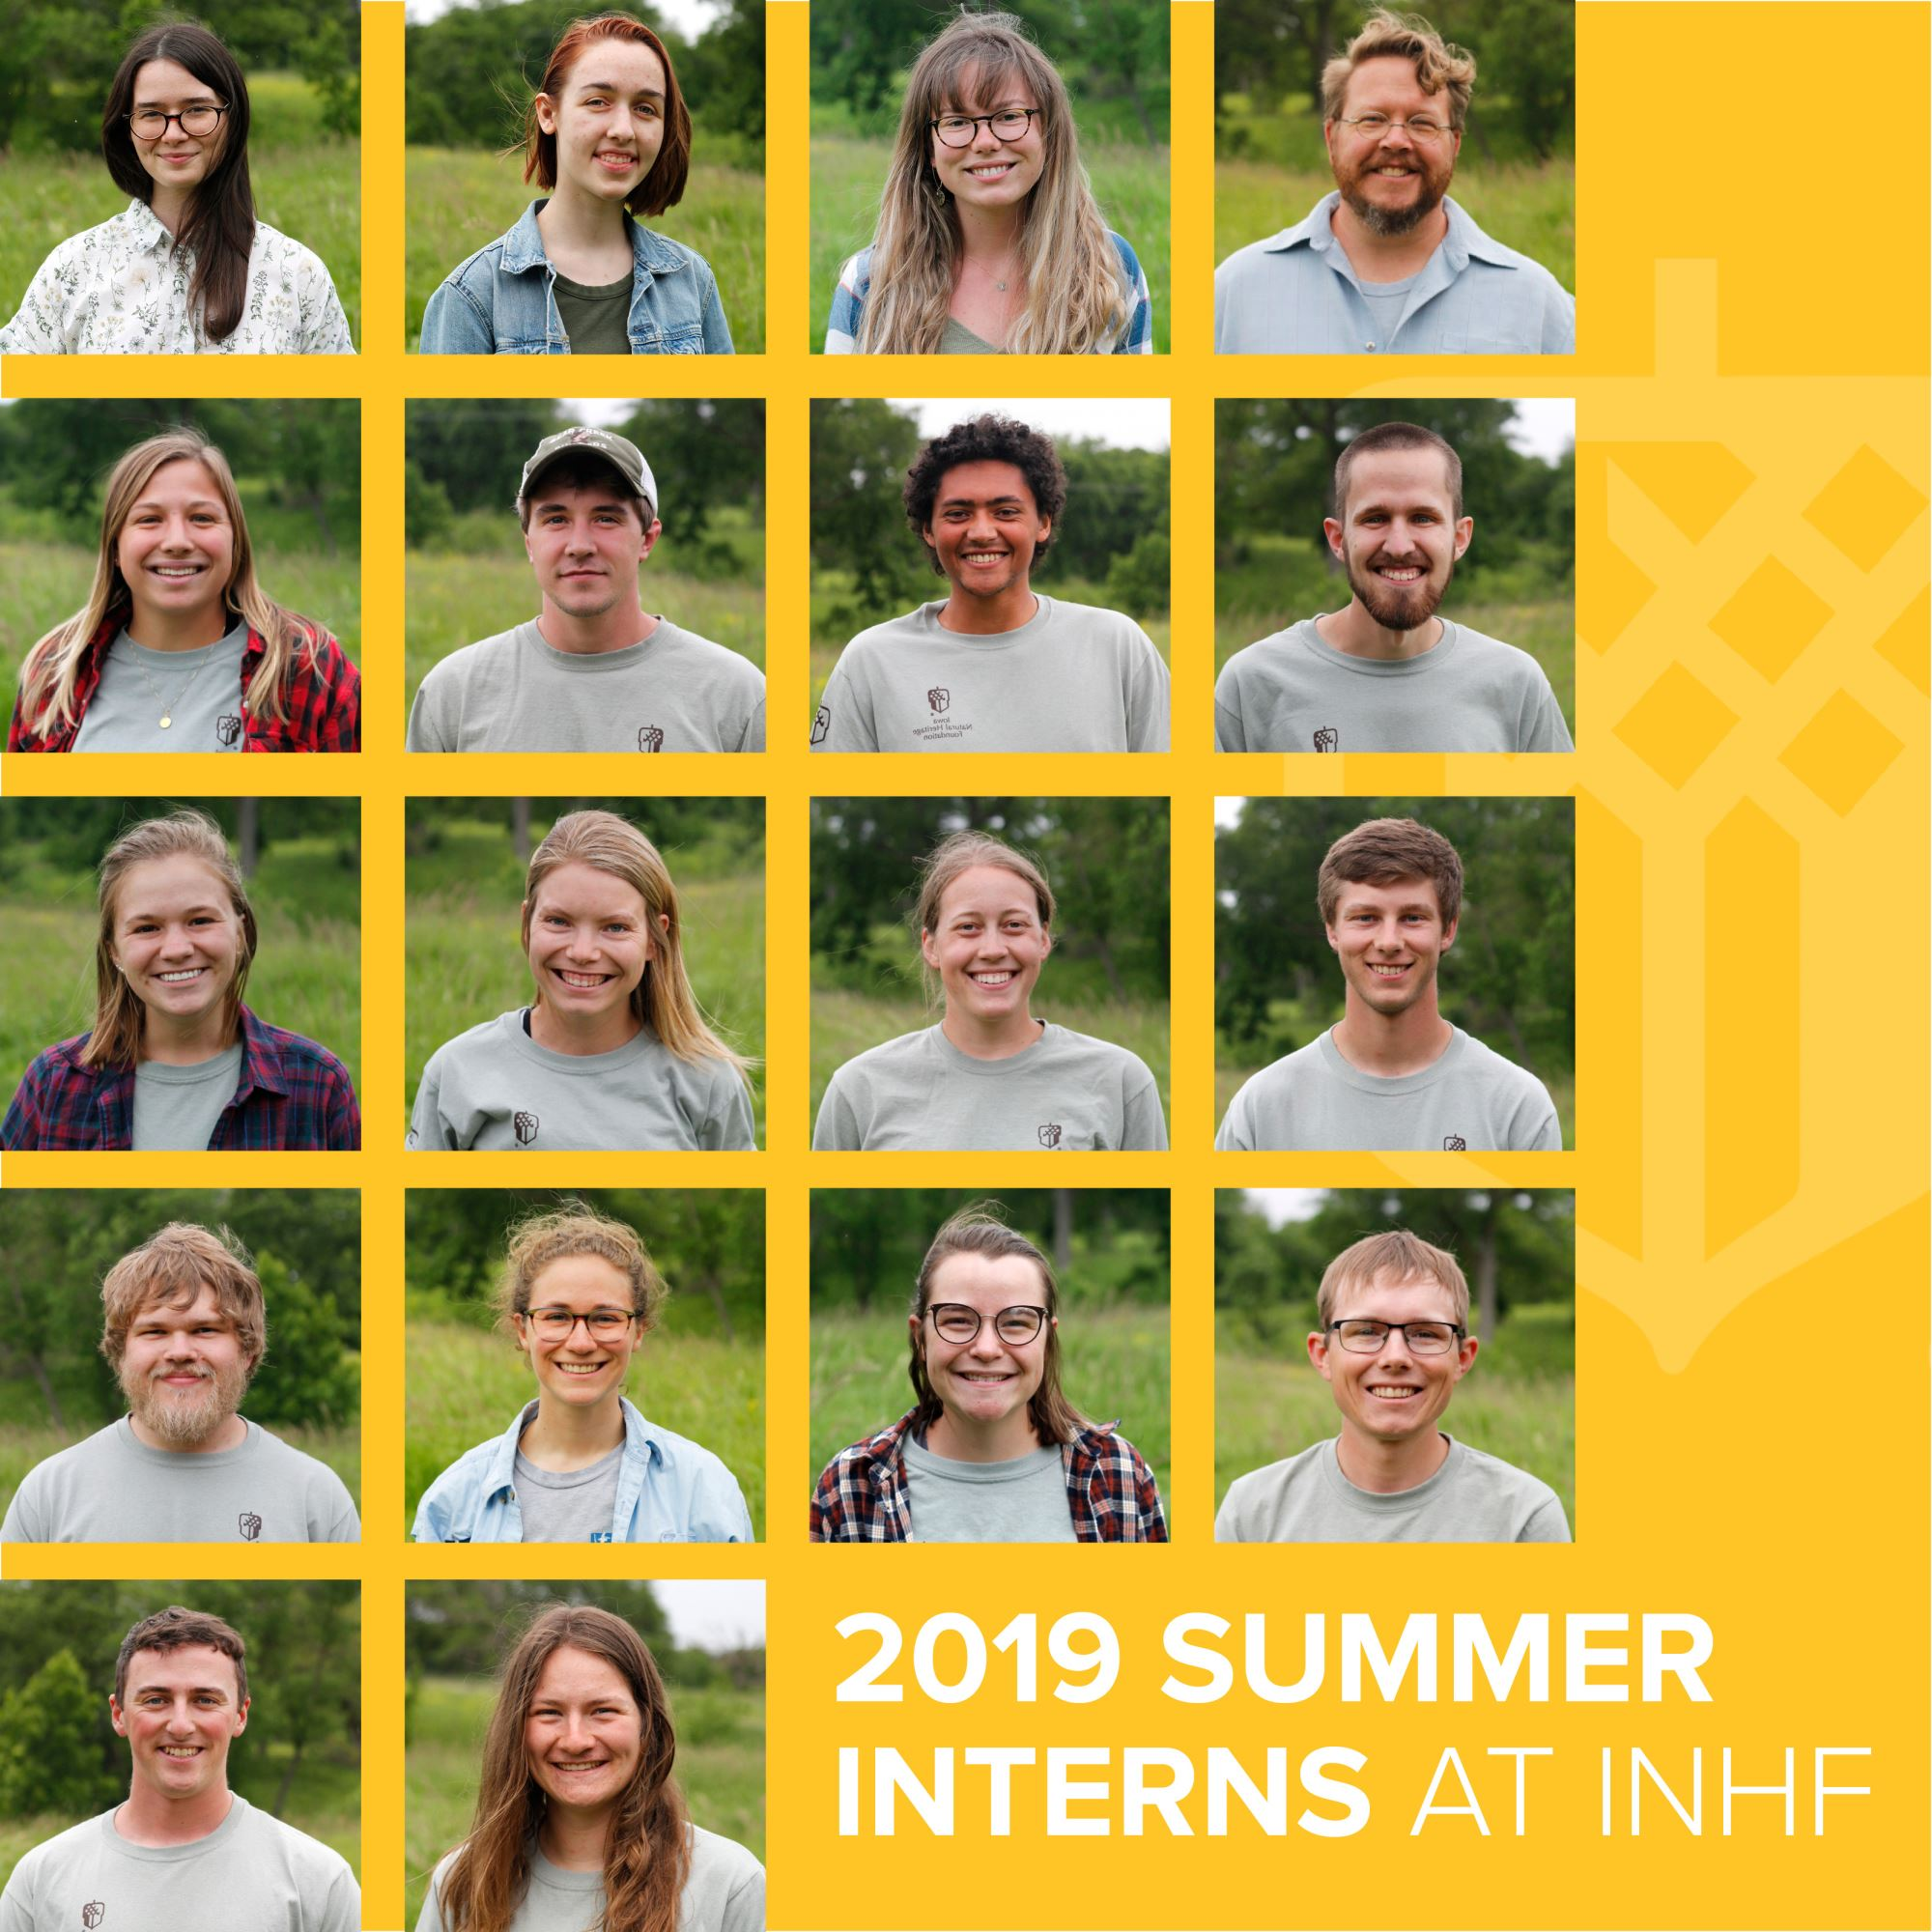 Meet INHF's 2019 Summer Interns